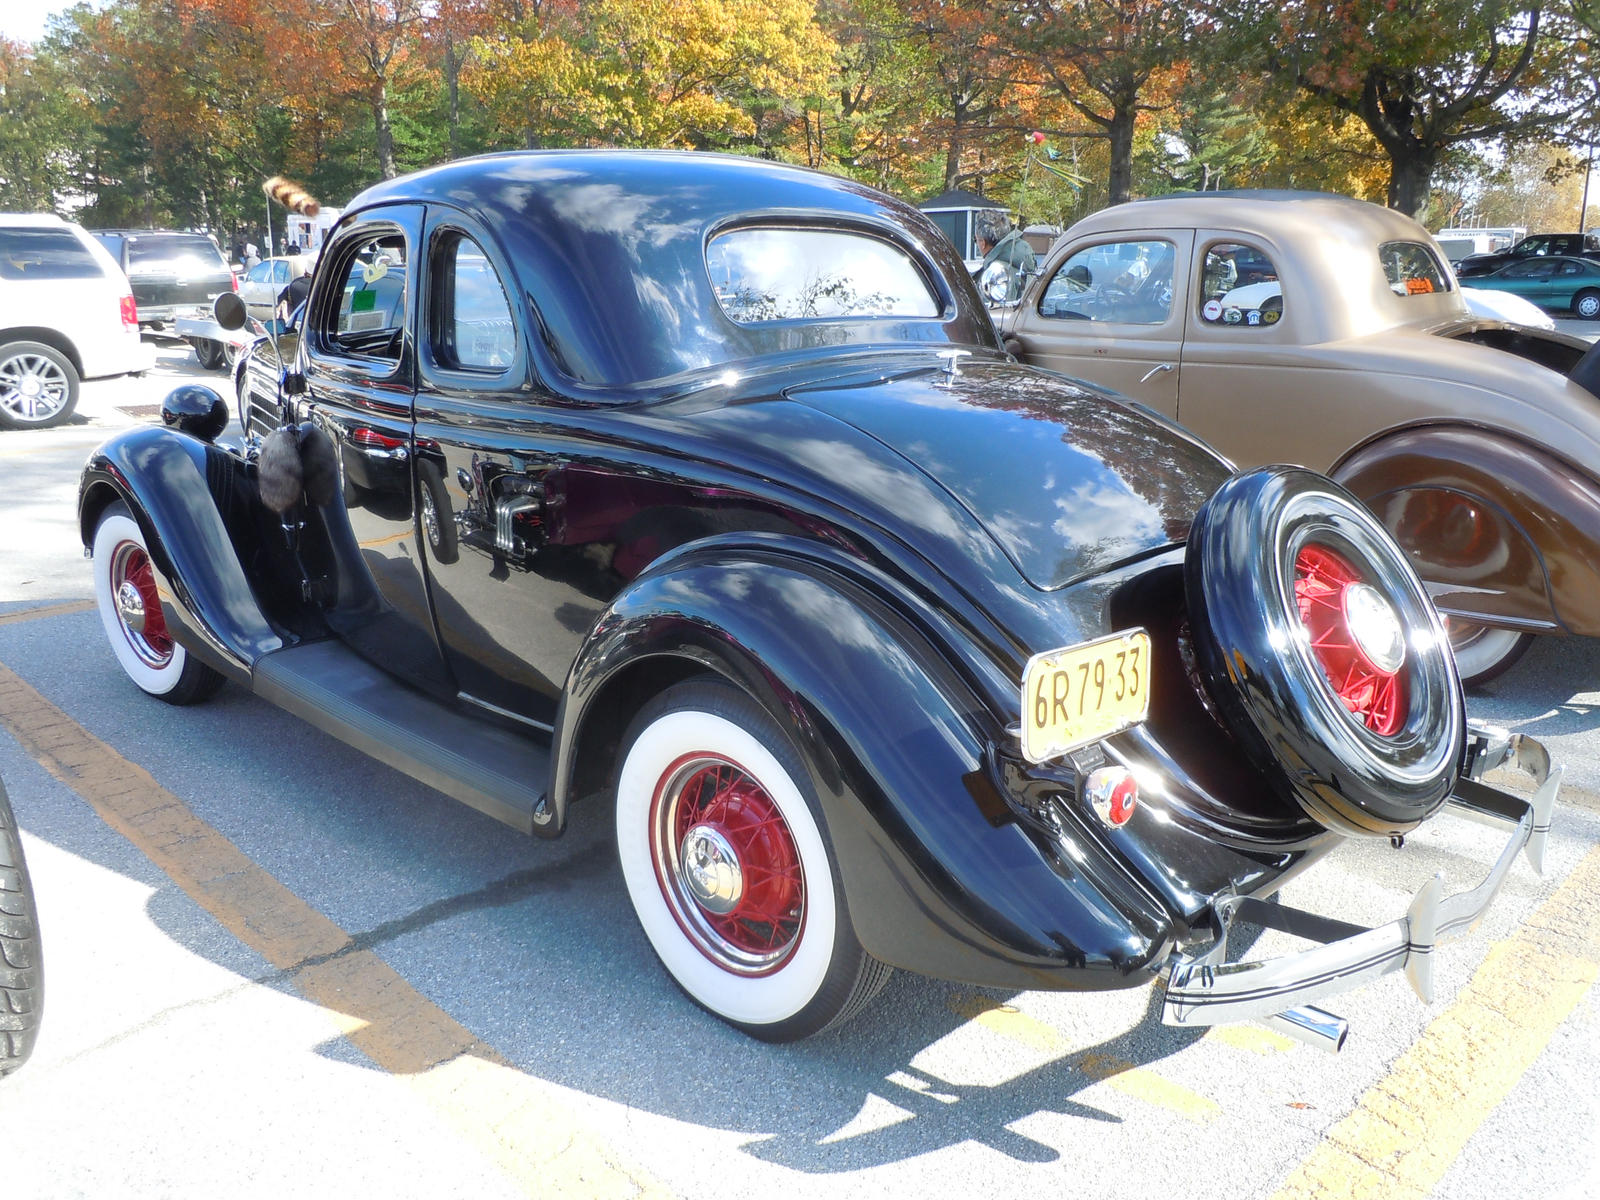 1935 ford 5 window coupe iii by brooklyn47 on deviantart for 1935 ford three window coupe